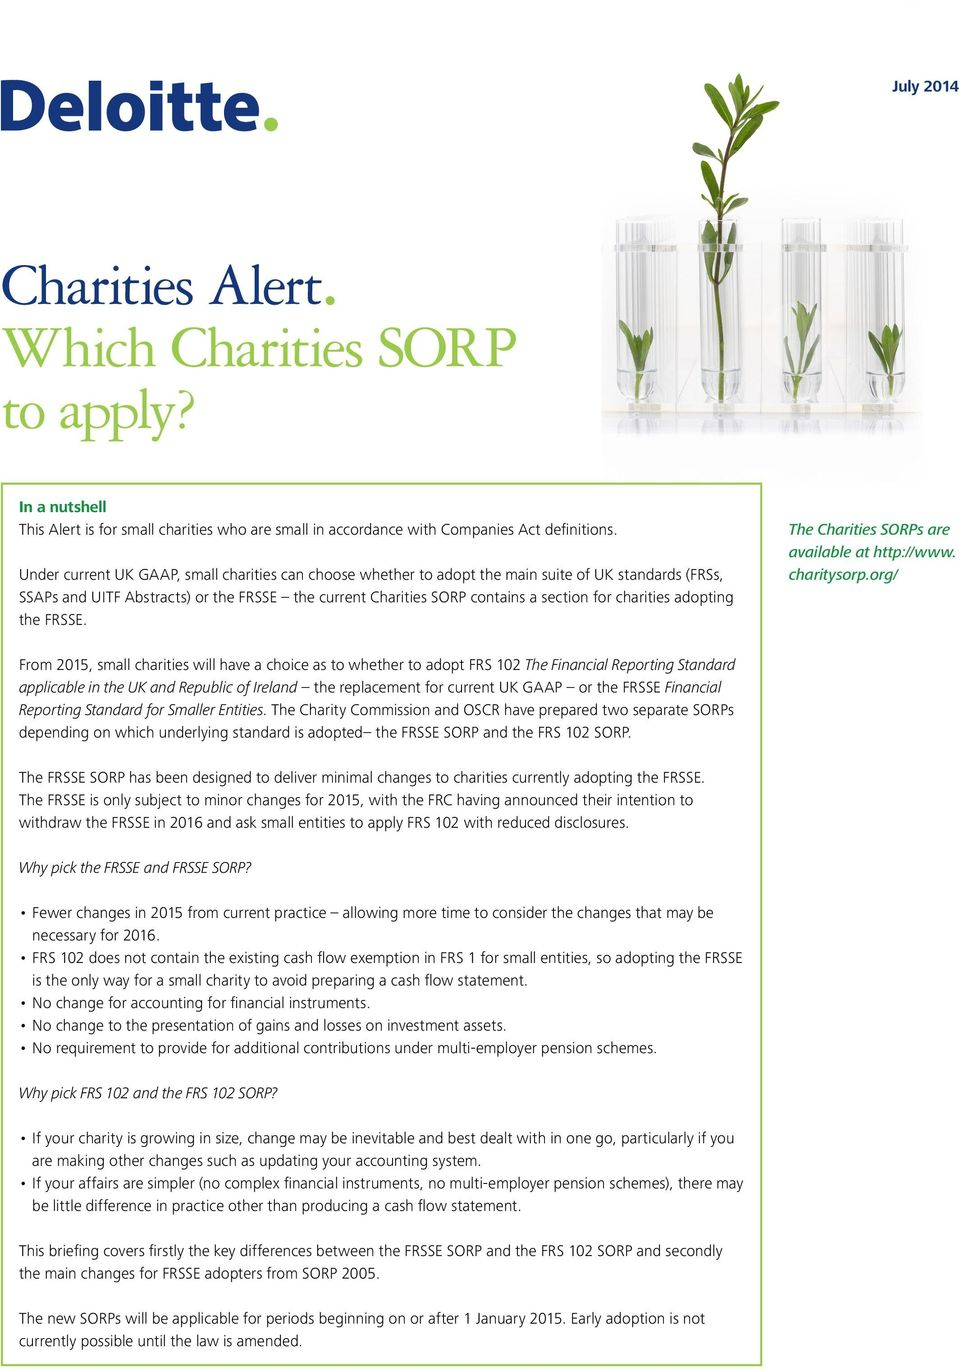 charities adopting the FRSSE. The Charities SORPs are available at http://www. charitysorp.